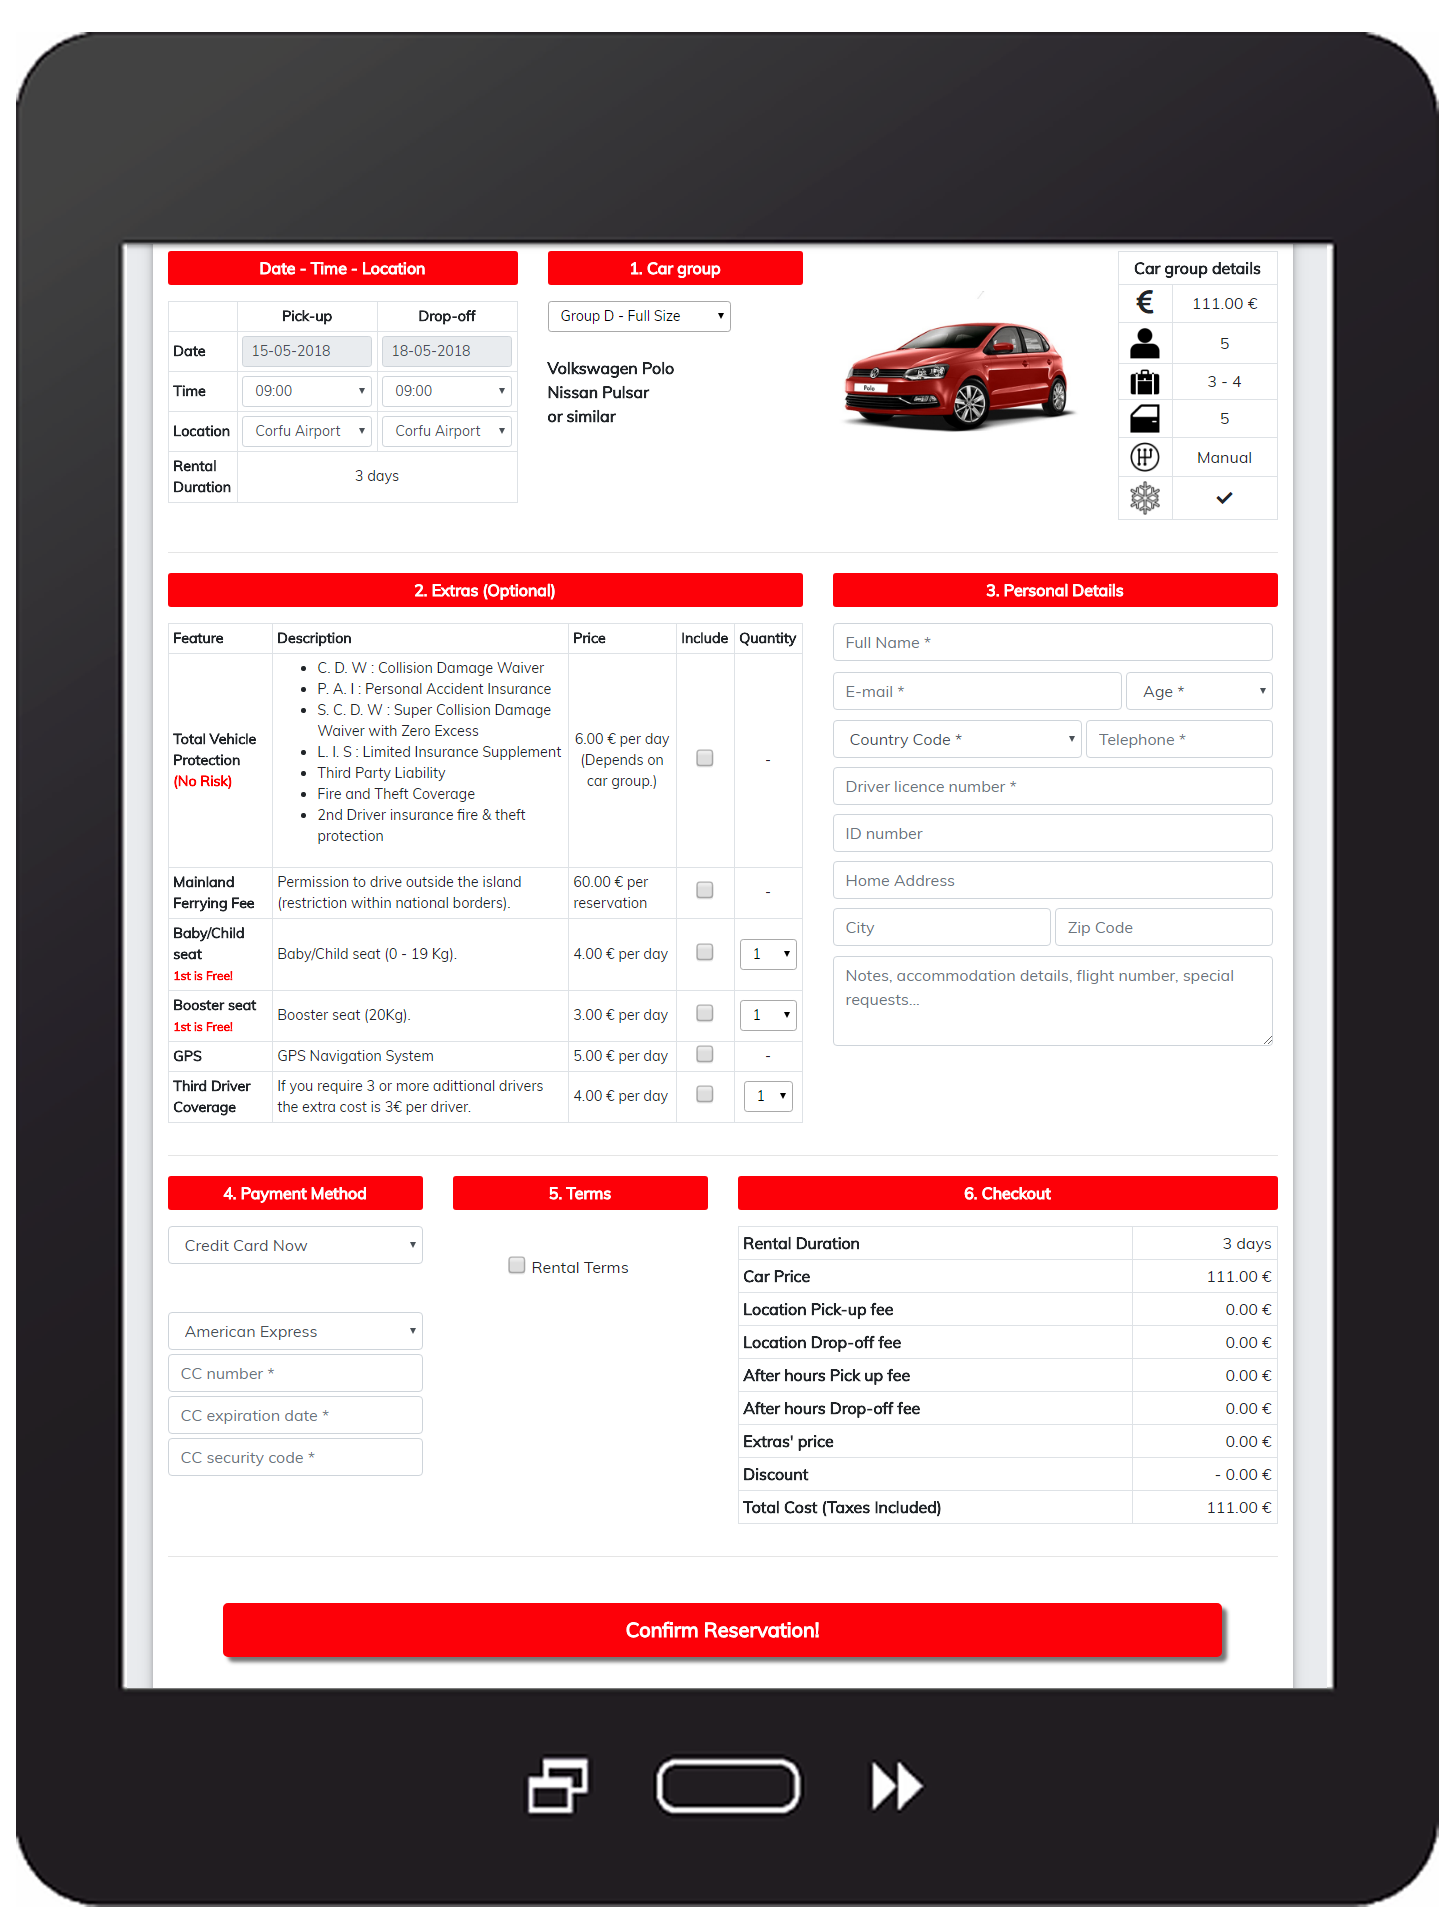 Rent A Car - Booking System screen.